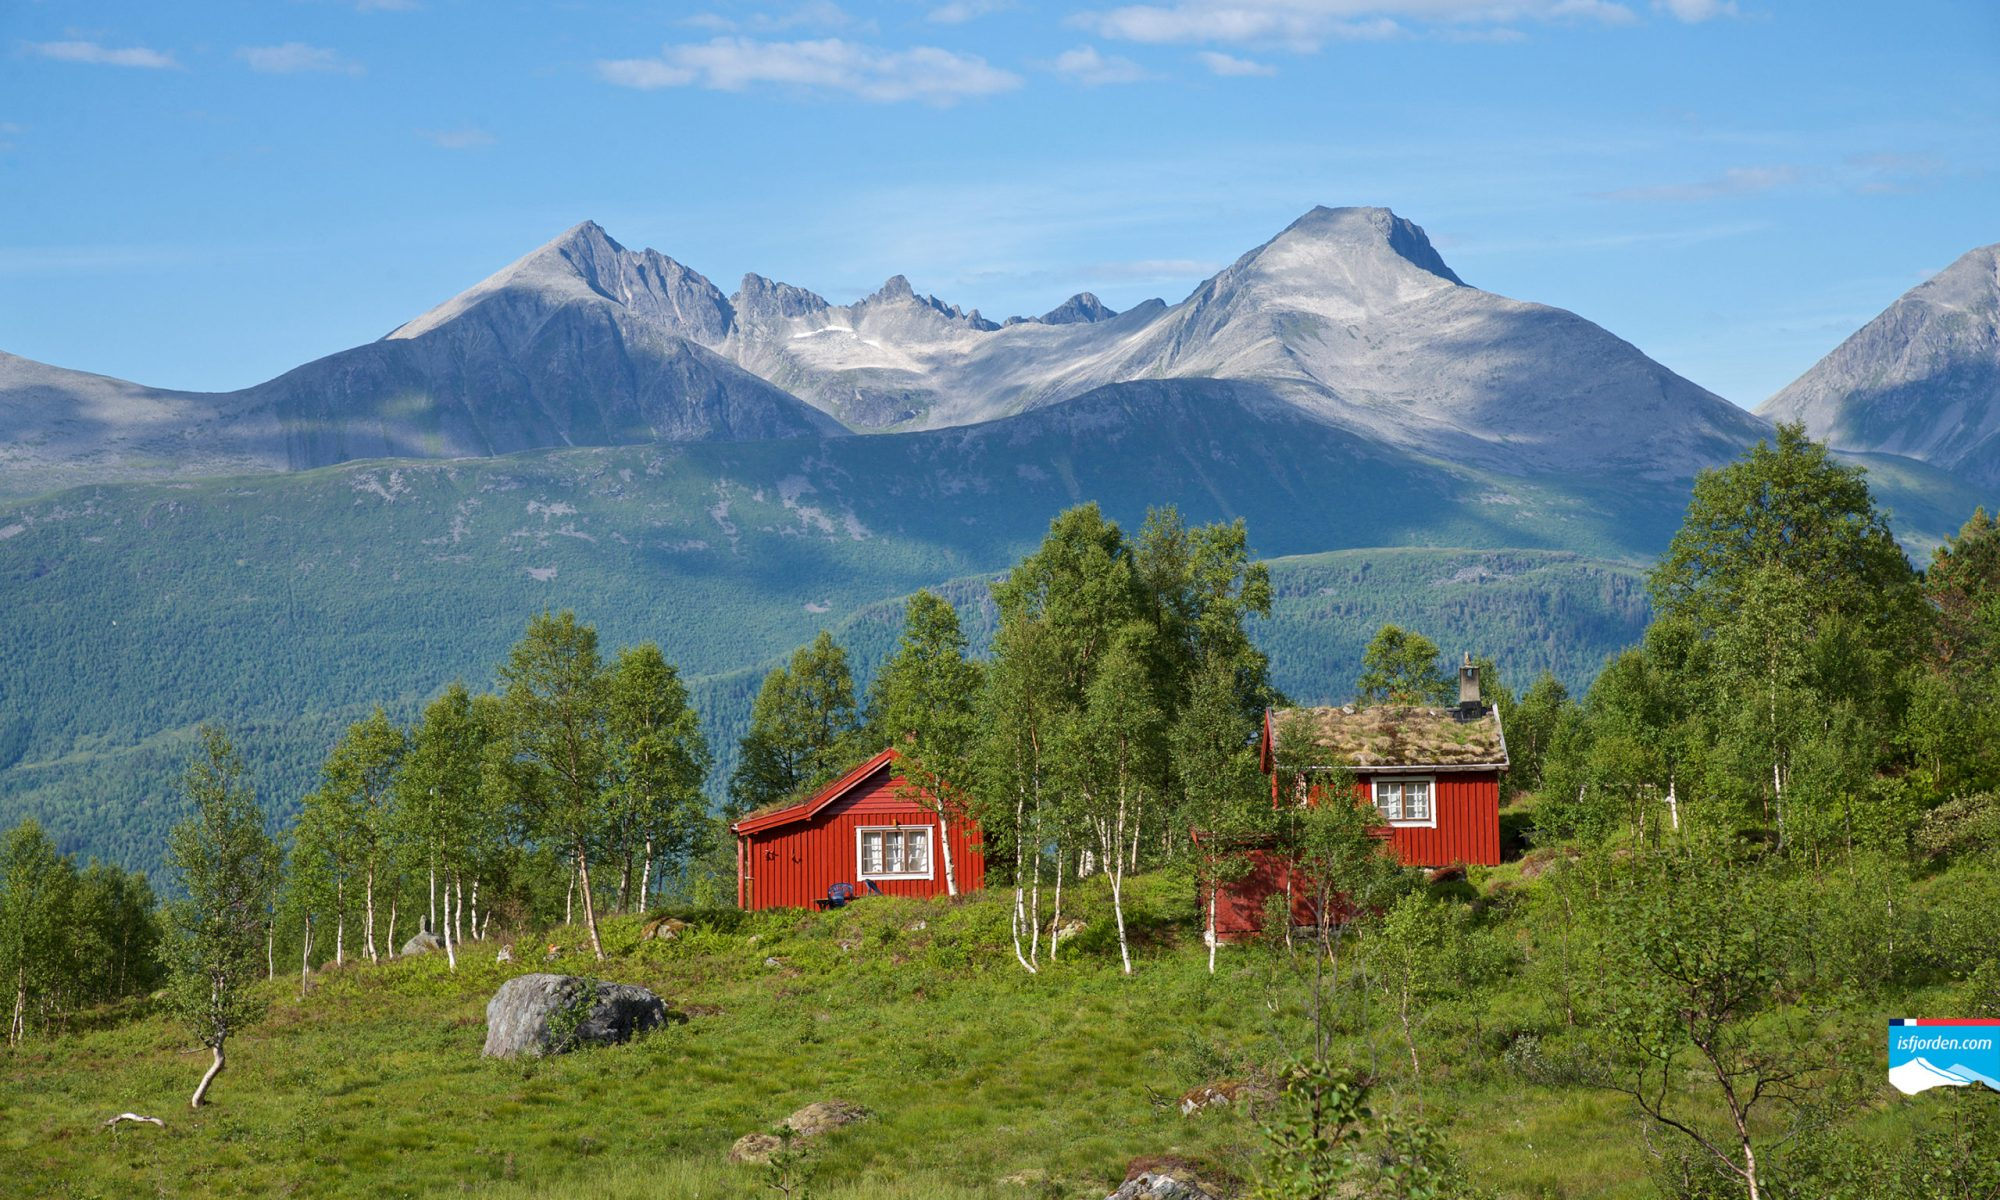 Vengedalen in Isfjorden, Romsdal. Klauva and Kirketaket in the background.